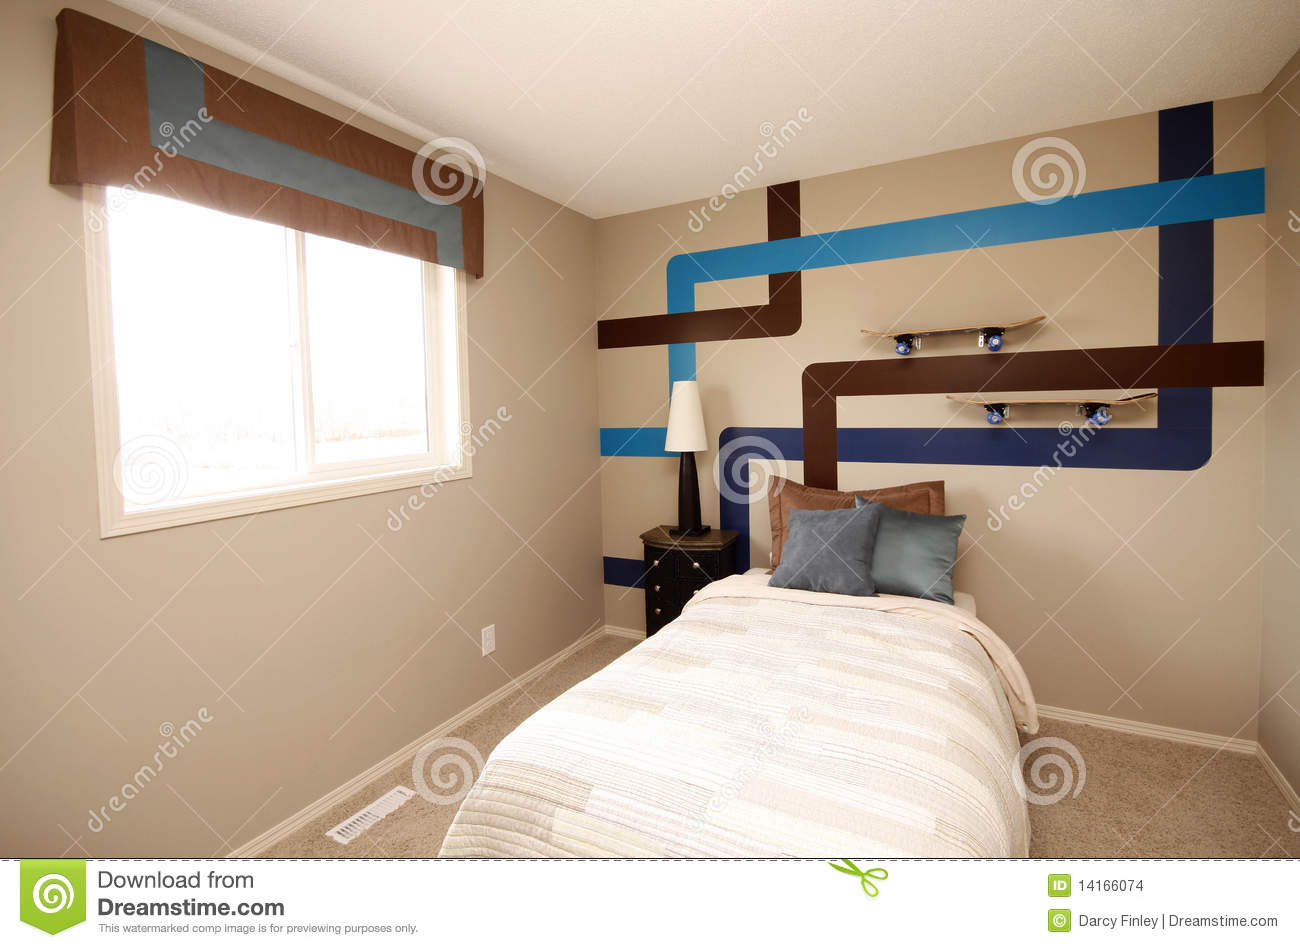 Cool boys bedroom stock photo image of condo relax 14166074 - Bed room photo ...